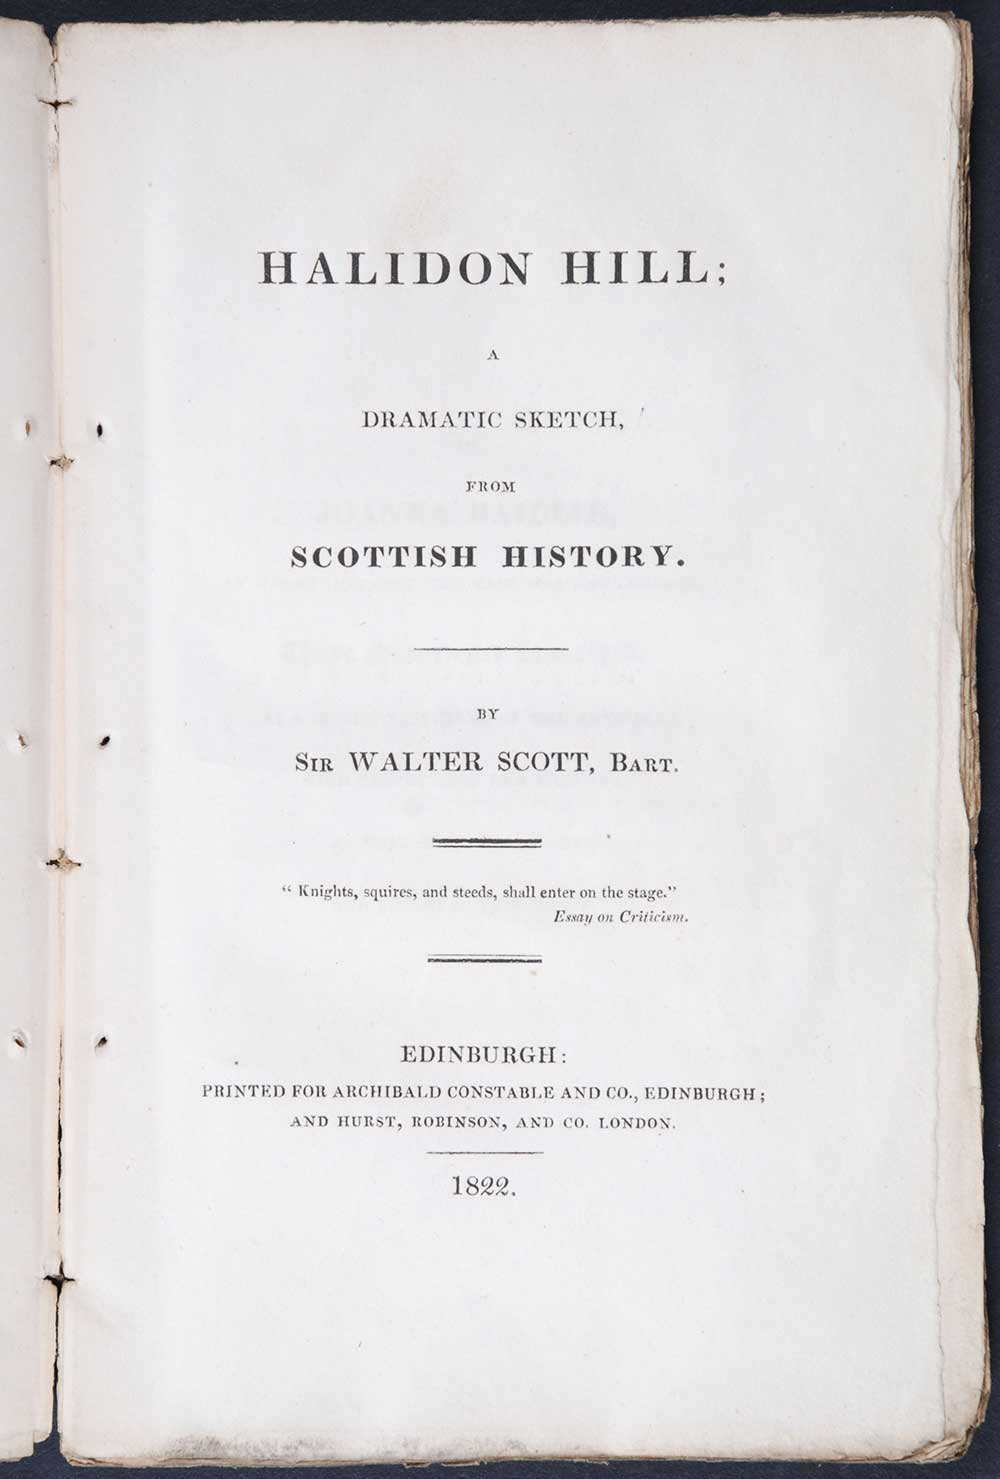 Sir Walter Scott. <em>Halidon Hill: a dramatic sketch from Scottish history.</em> [1st edition]. Edinburgh: Printed for Archibald Constable and Co., Edinburgh; and Hurst, Robinson and Co., London, 1822.